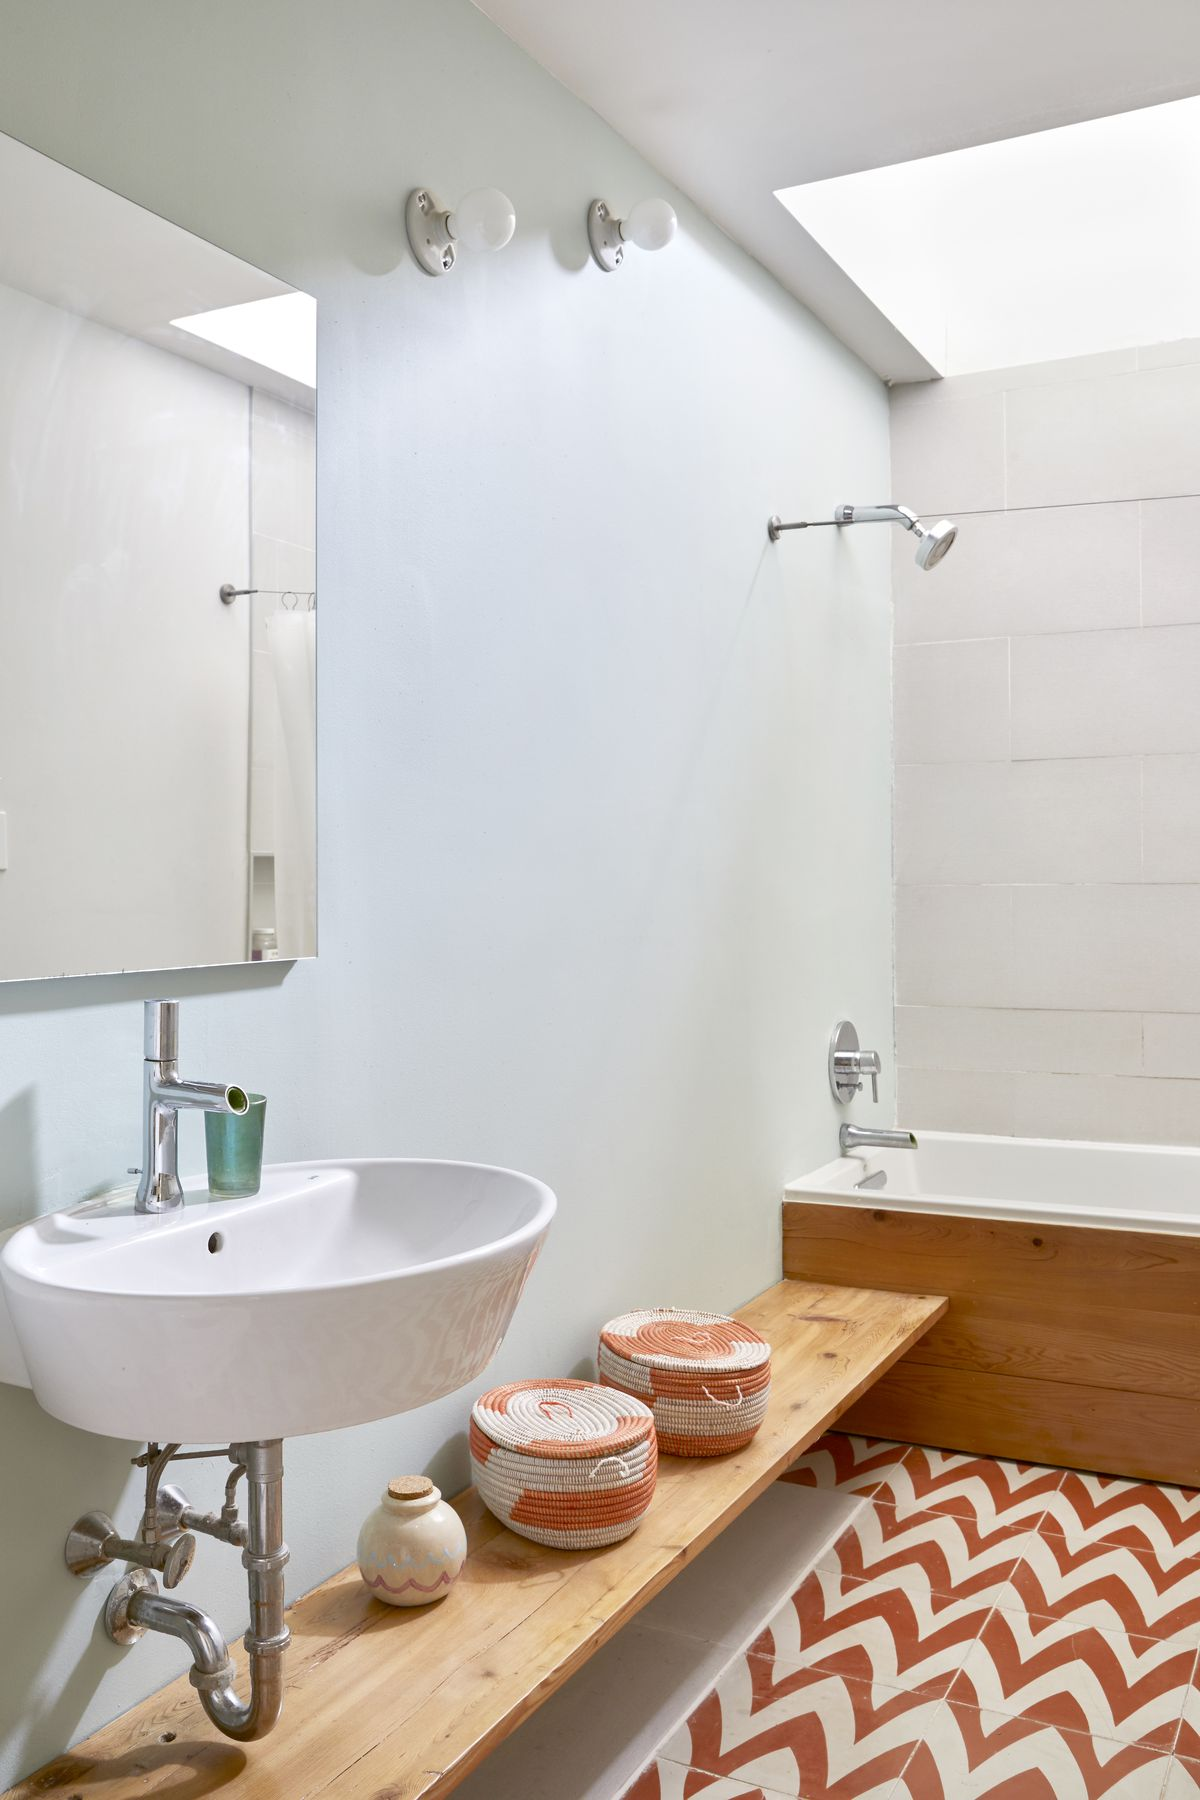 Eggshell-colored bathroom with a low board for storage baskets. A tub sits in the corner.